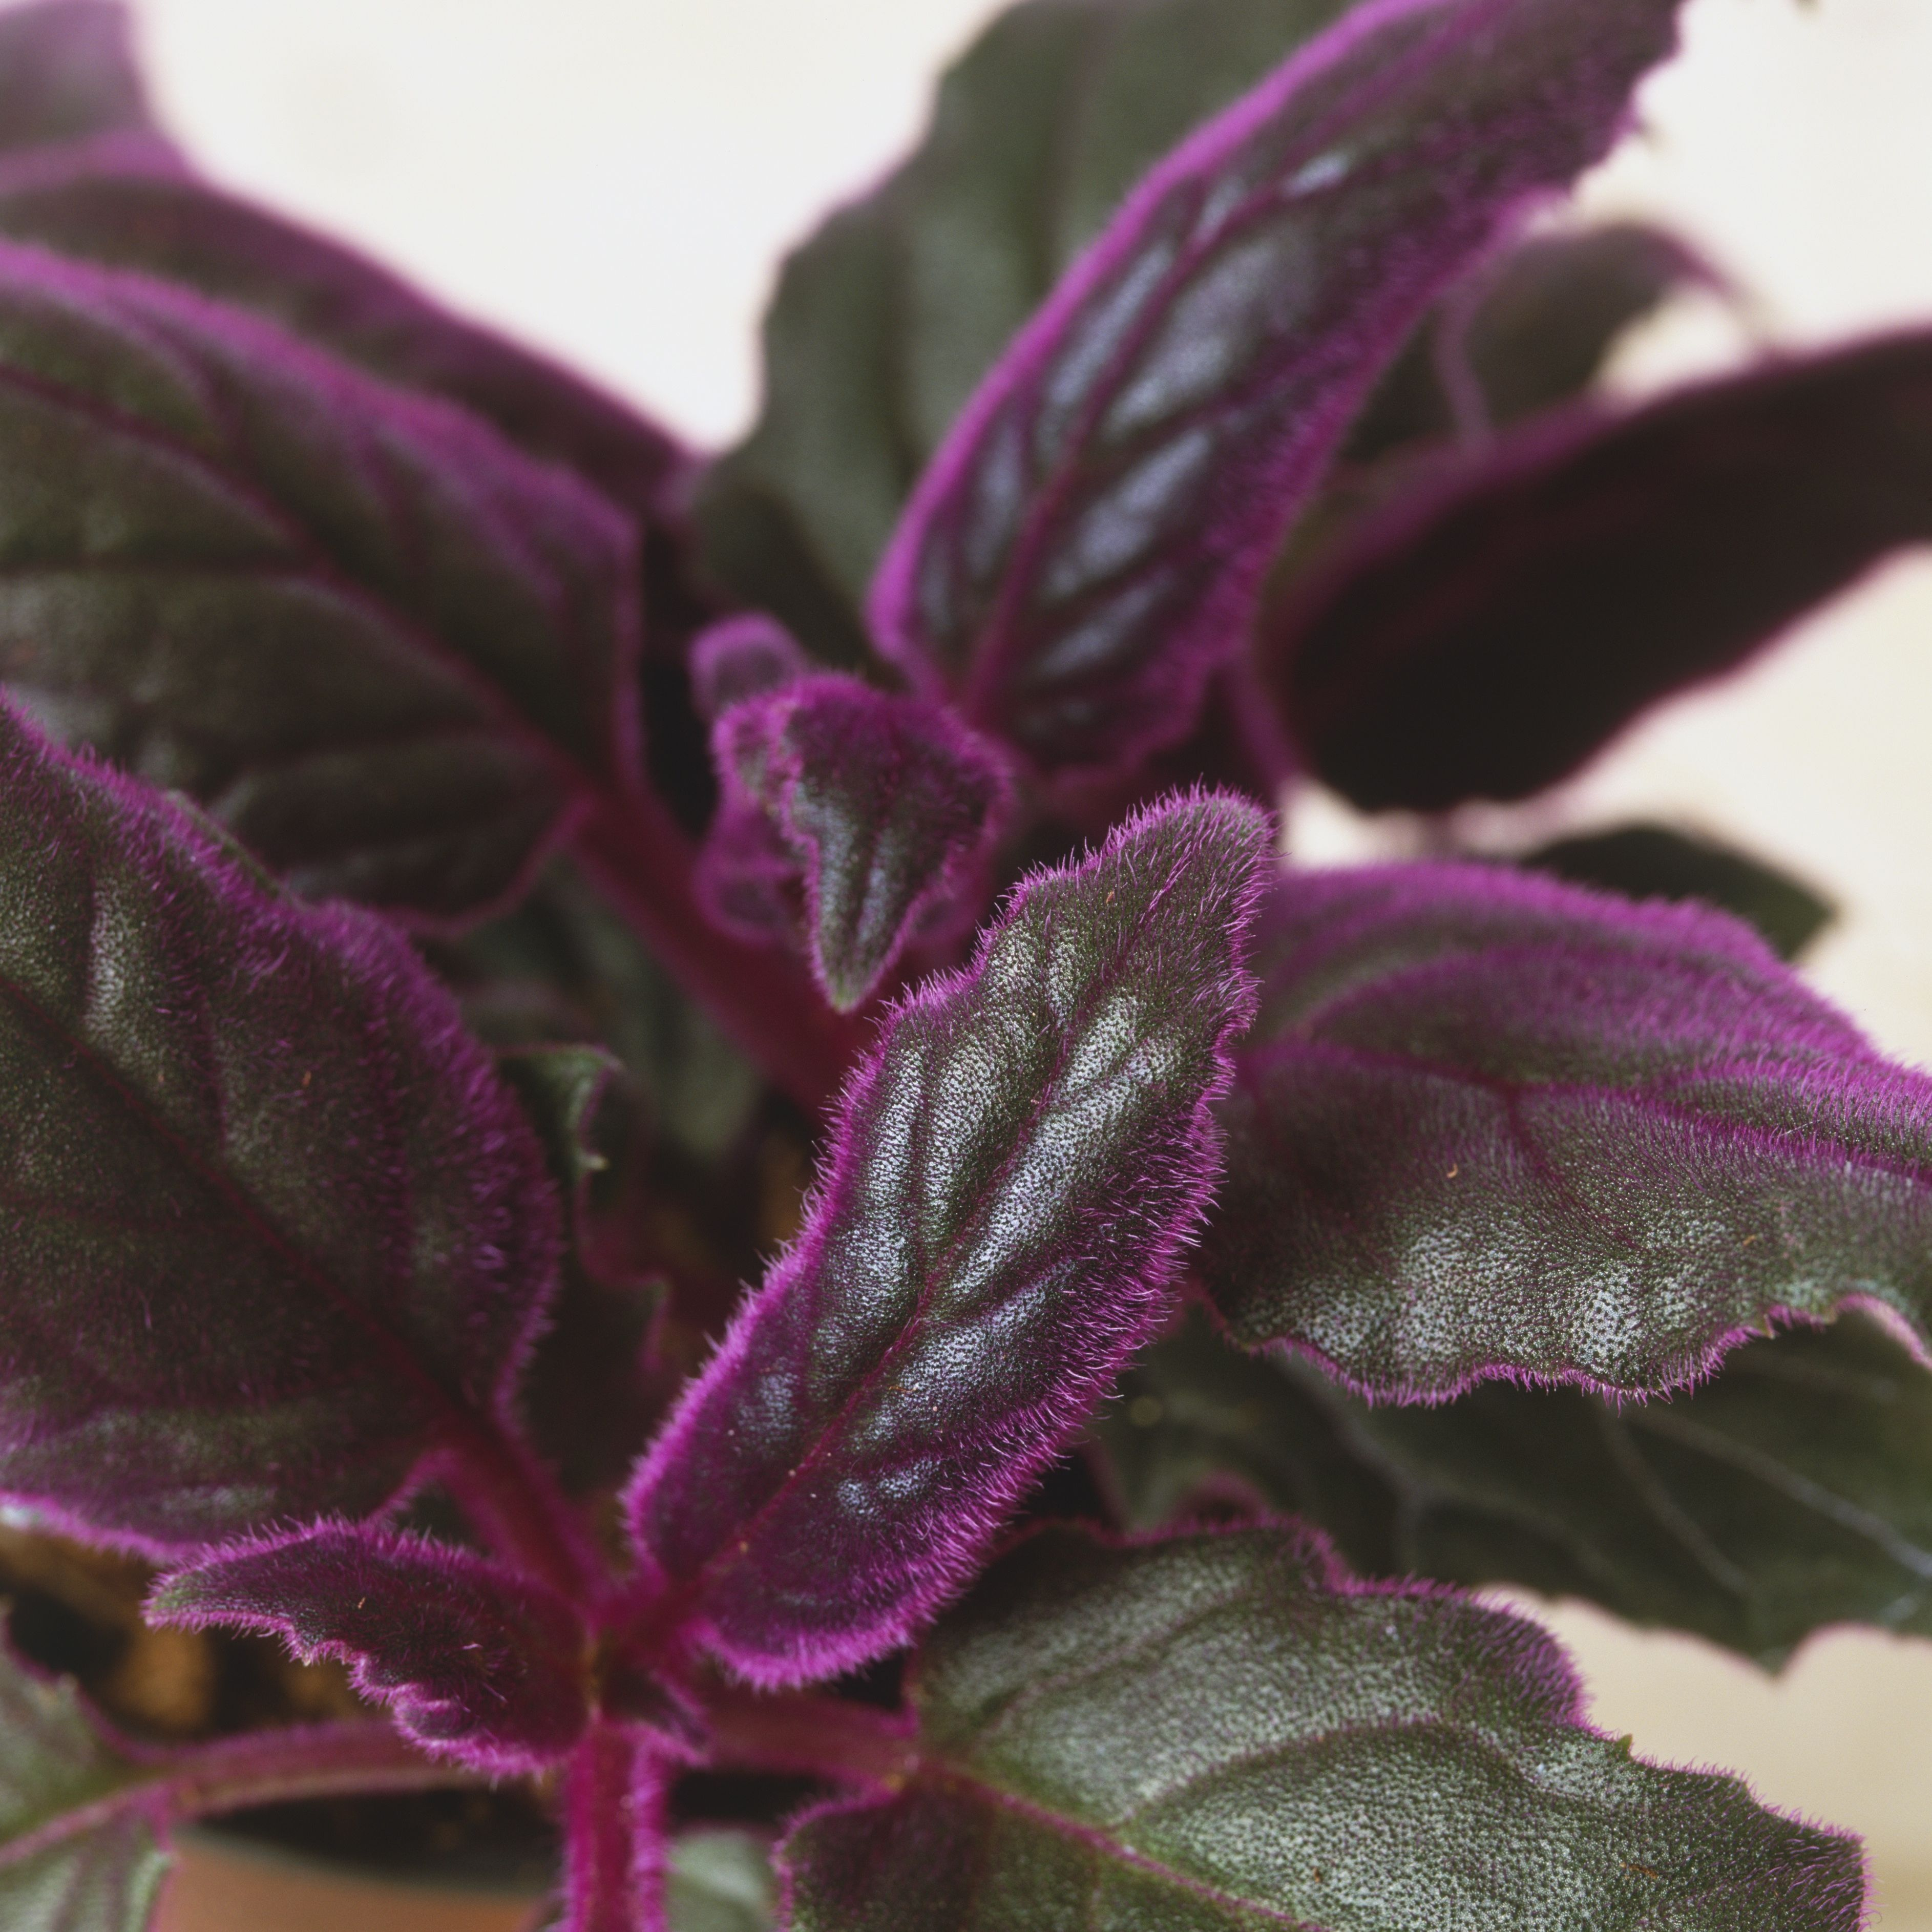 Colorful Houseplants That Aren't Hard to Grow on house plants with light green leaves, house plants with shiny leaves, house plants and their names, house with red flowers, wandering jew with fuzzy leaves, house plants with waxy red blooms, olive tree green leaves, florida plants with red leaves, tomato plants with purple leaves, house plants with small leaves, perennial plants with purple leaves, house plants with long green leaves, house plants with colorful leaves, poisonous plants with purple leaves, house plant rubber plant, house plants with bronze leaves, house plants with dark red leaves, house plant purple heart, purple house plant fuzzy leaves, purple foliage plants with leaves,